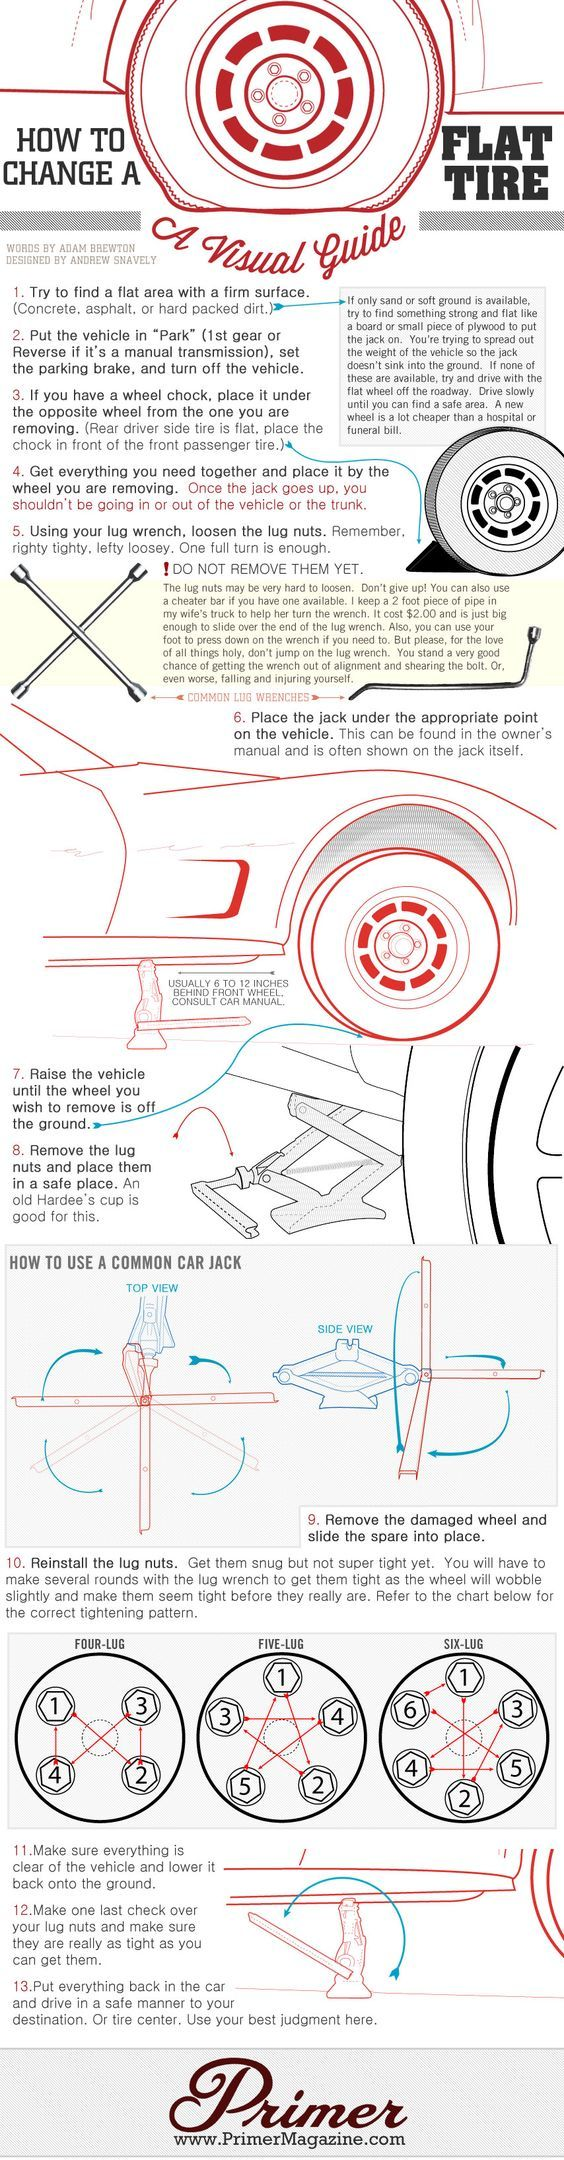 how to change a flat tire visual guide yes a properly running car is a fabulous accessory  [ 564 x 2160 Pixel ]